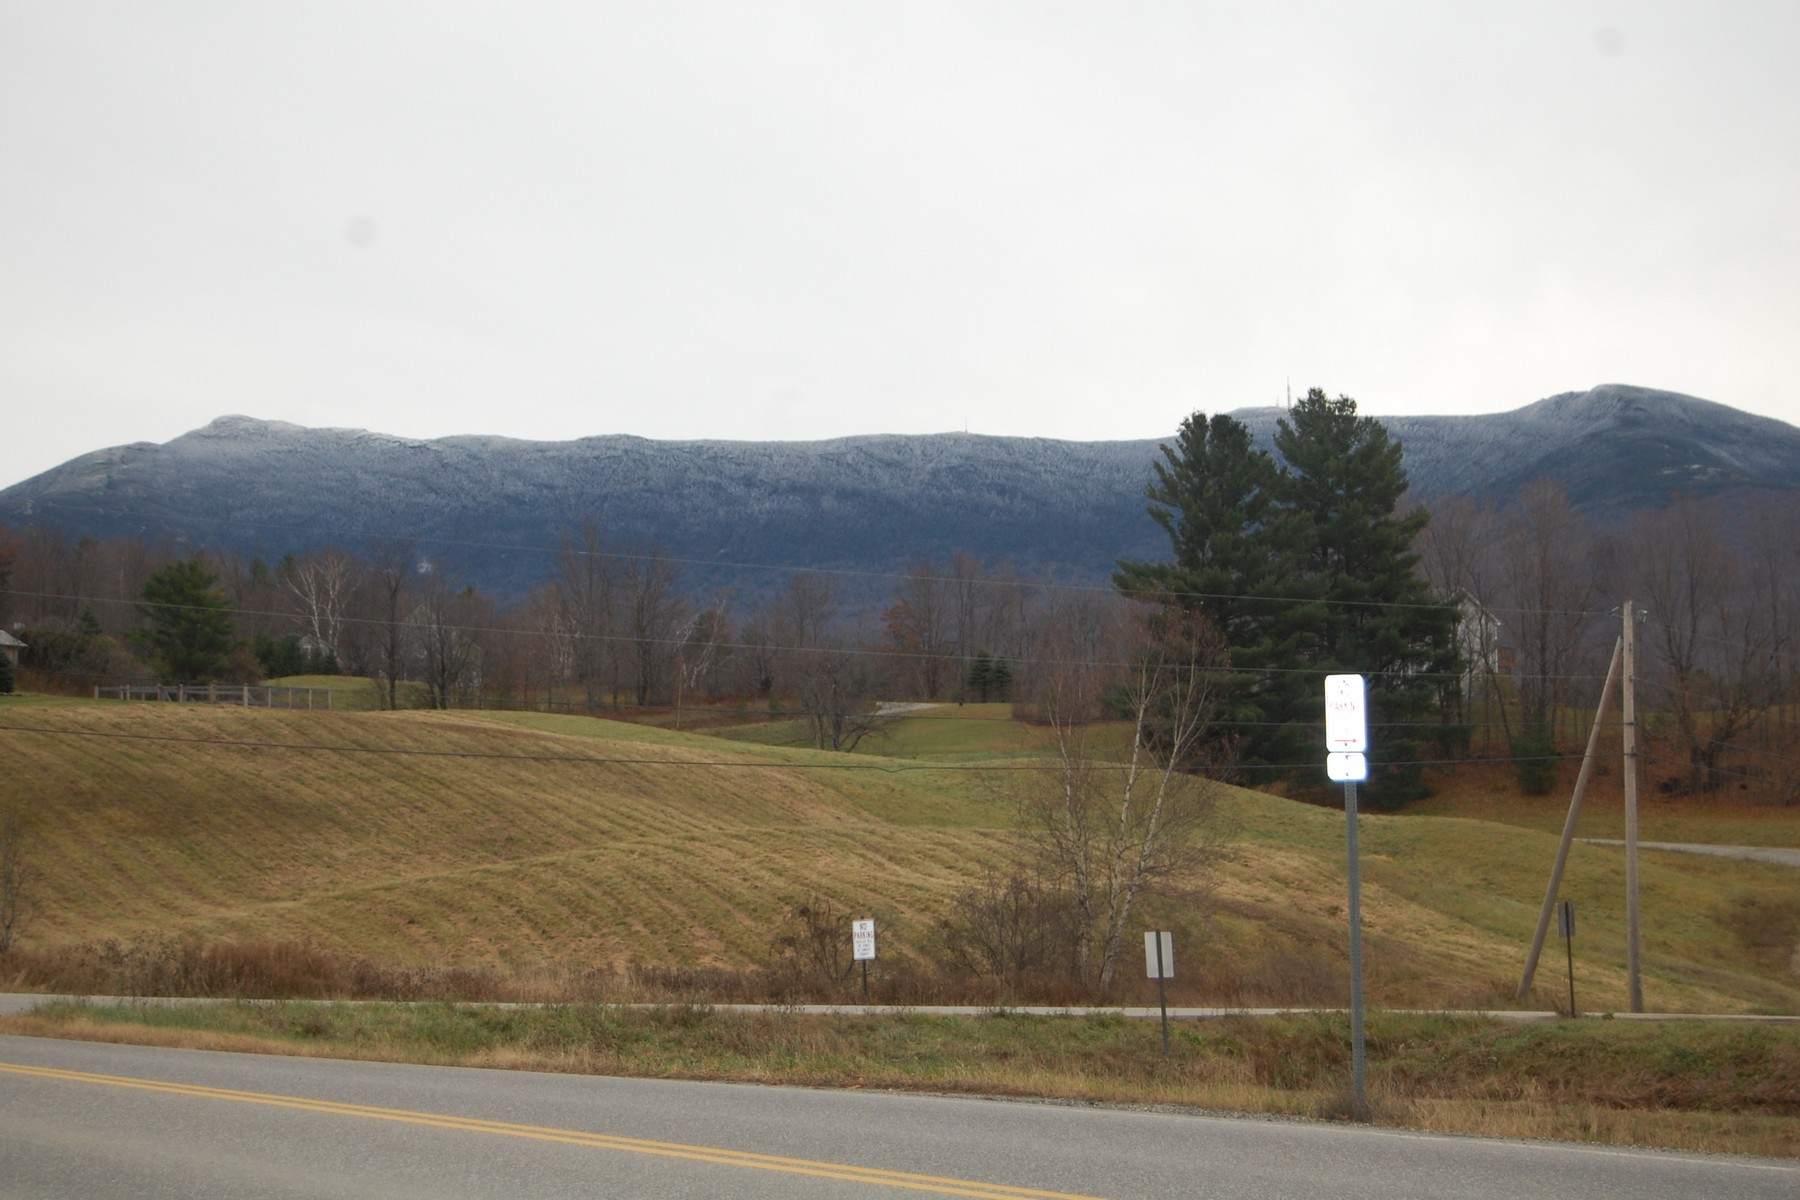 Land for Sale at #2 Shepherds Way Lot #2, Underhill #2 Shepherds Way Lot #2 Underhill, Vermont 05489 United States